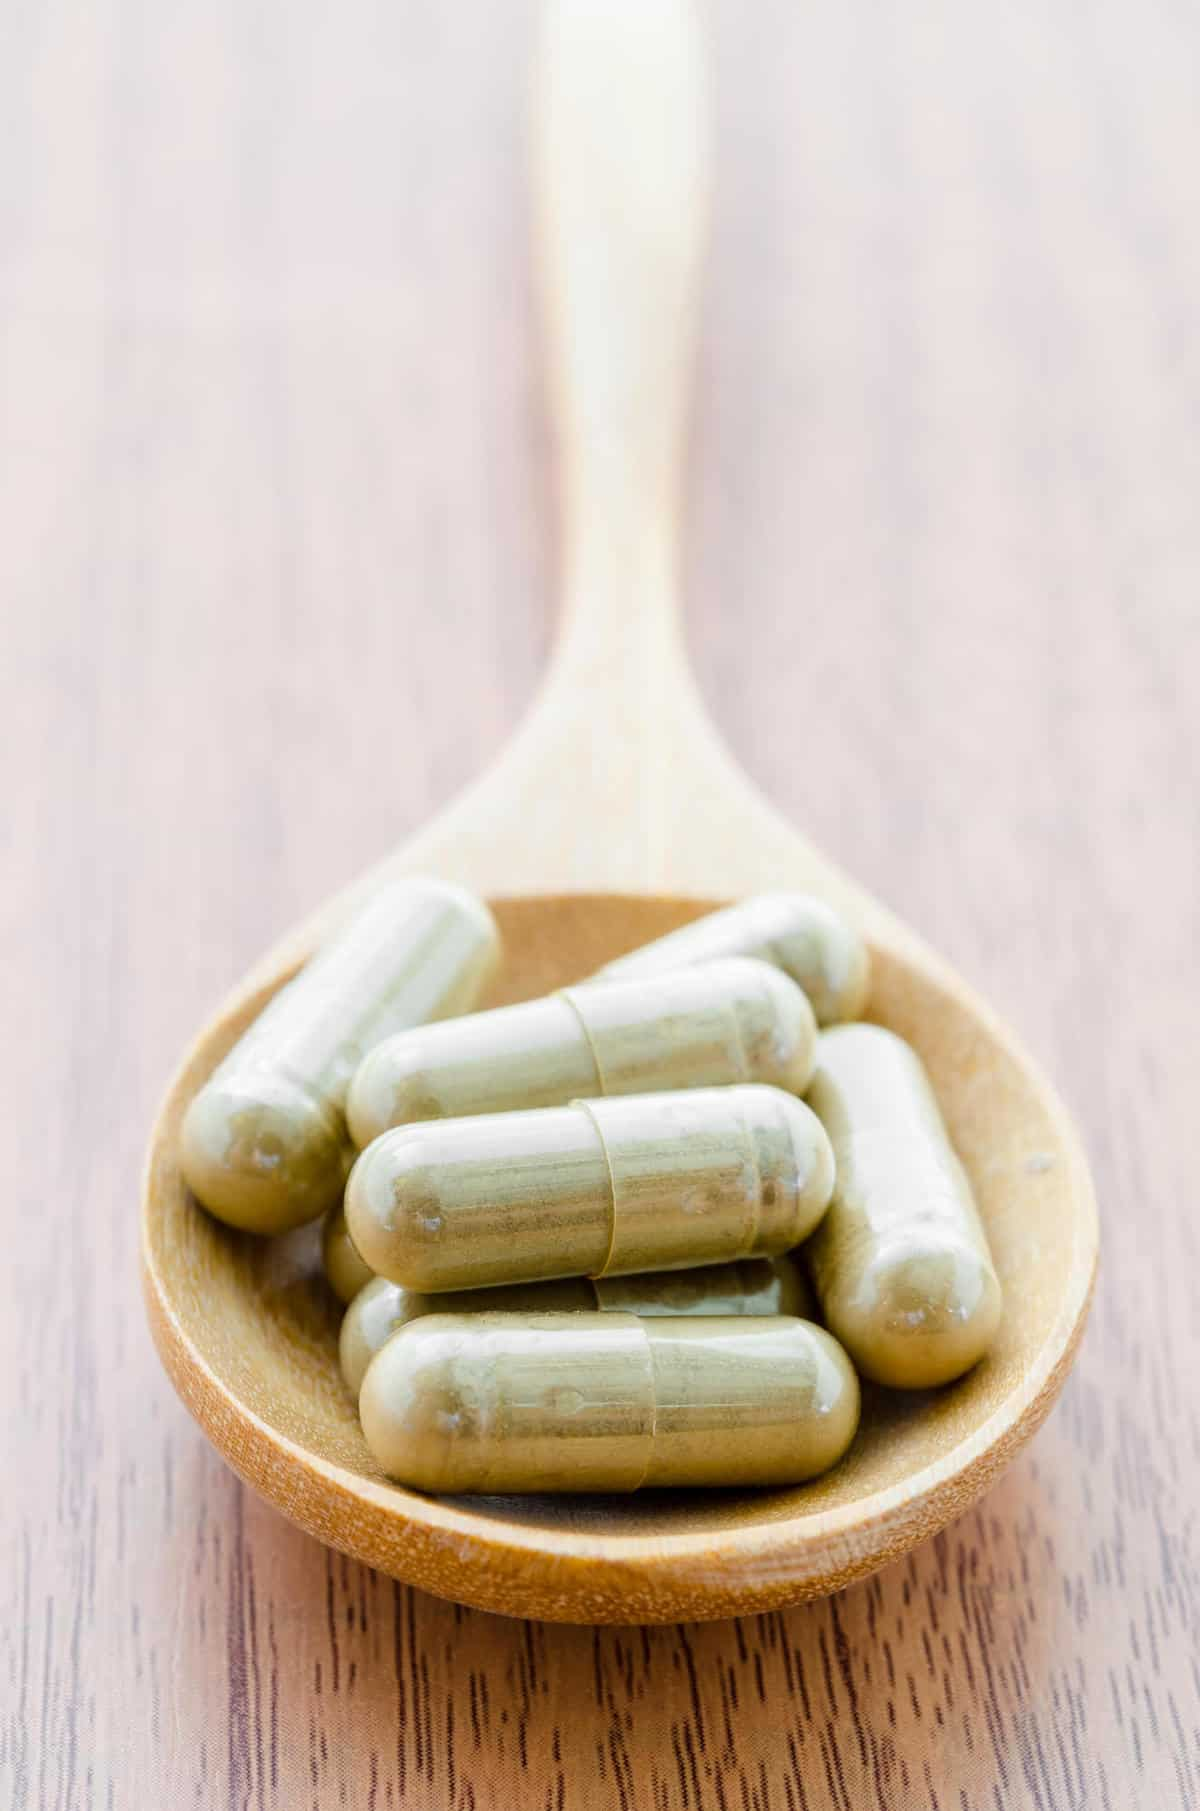 Supplement capsules on wooden spoon